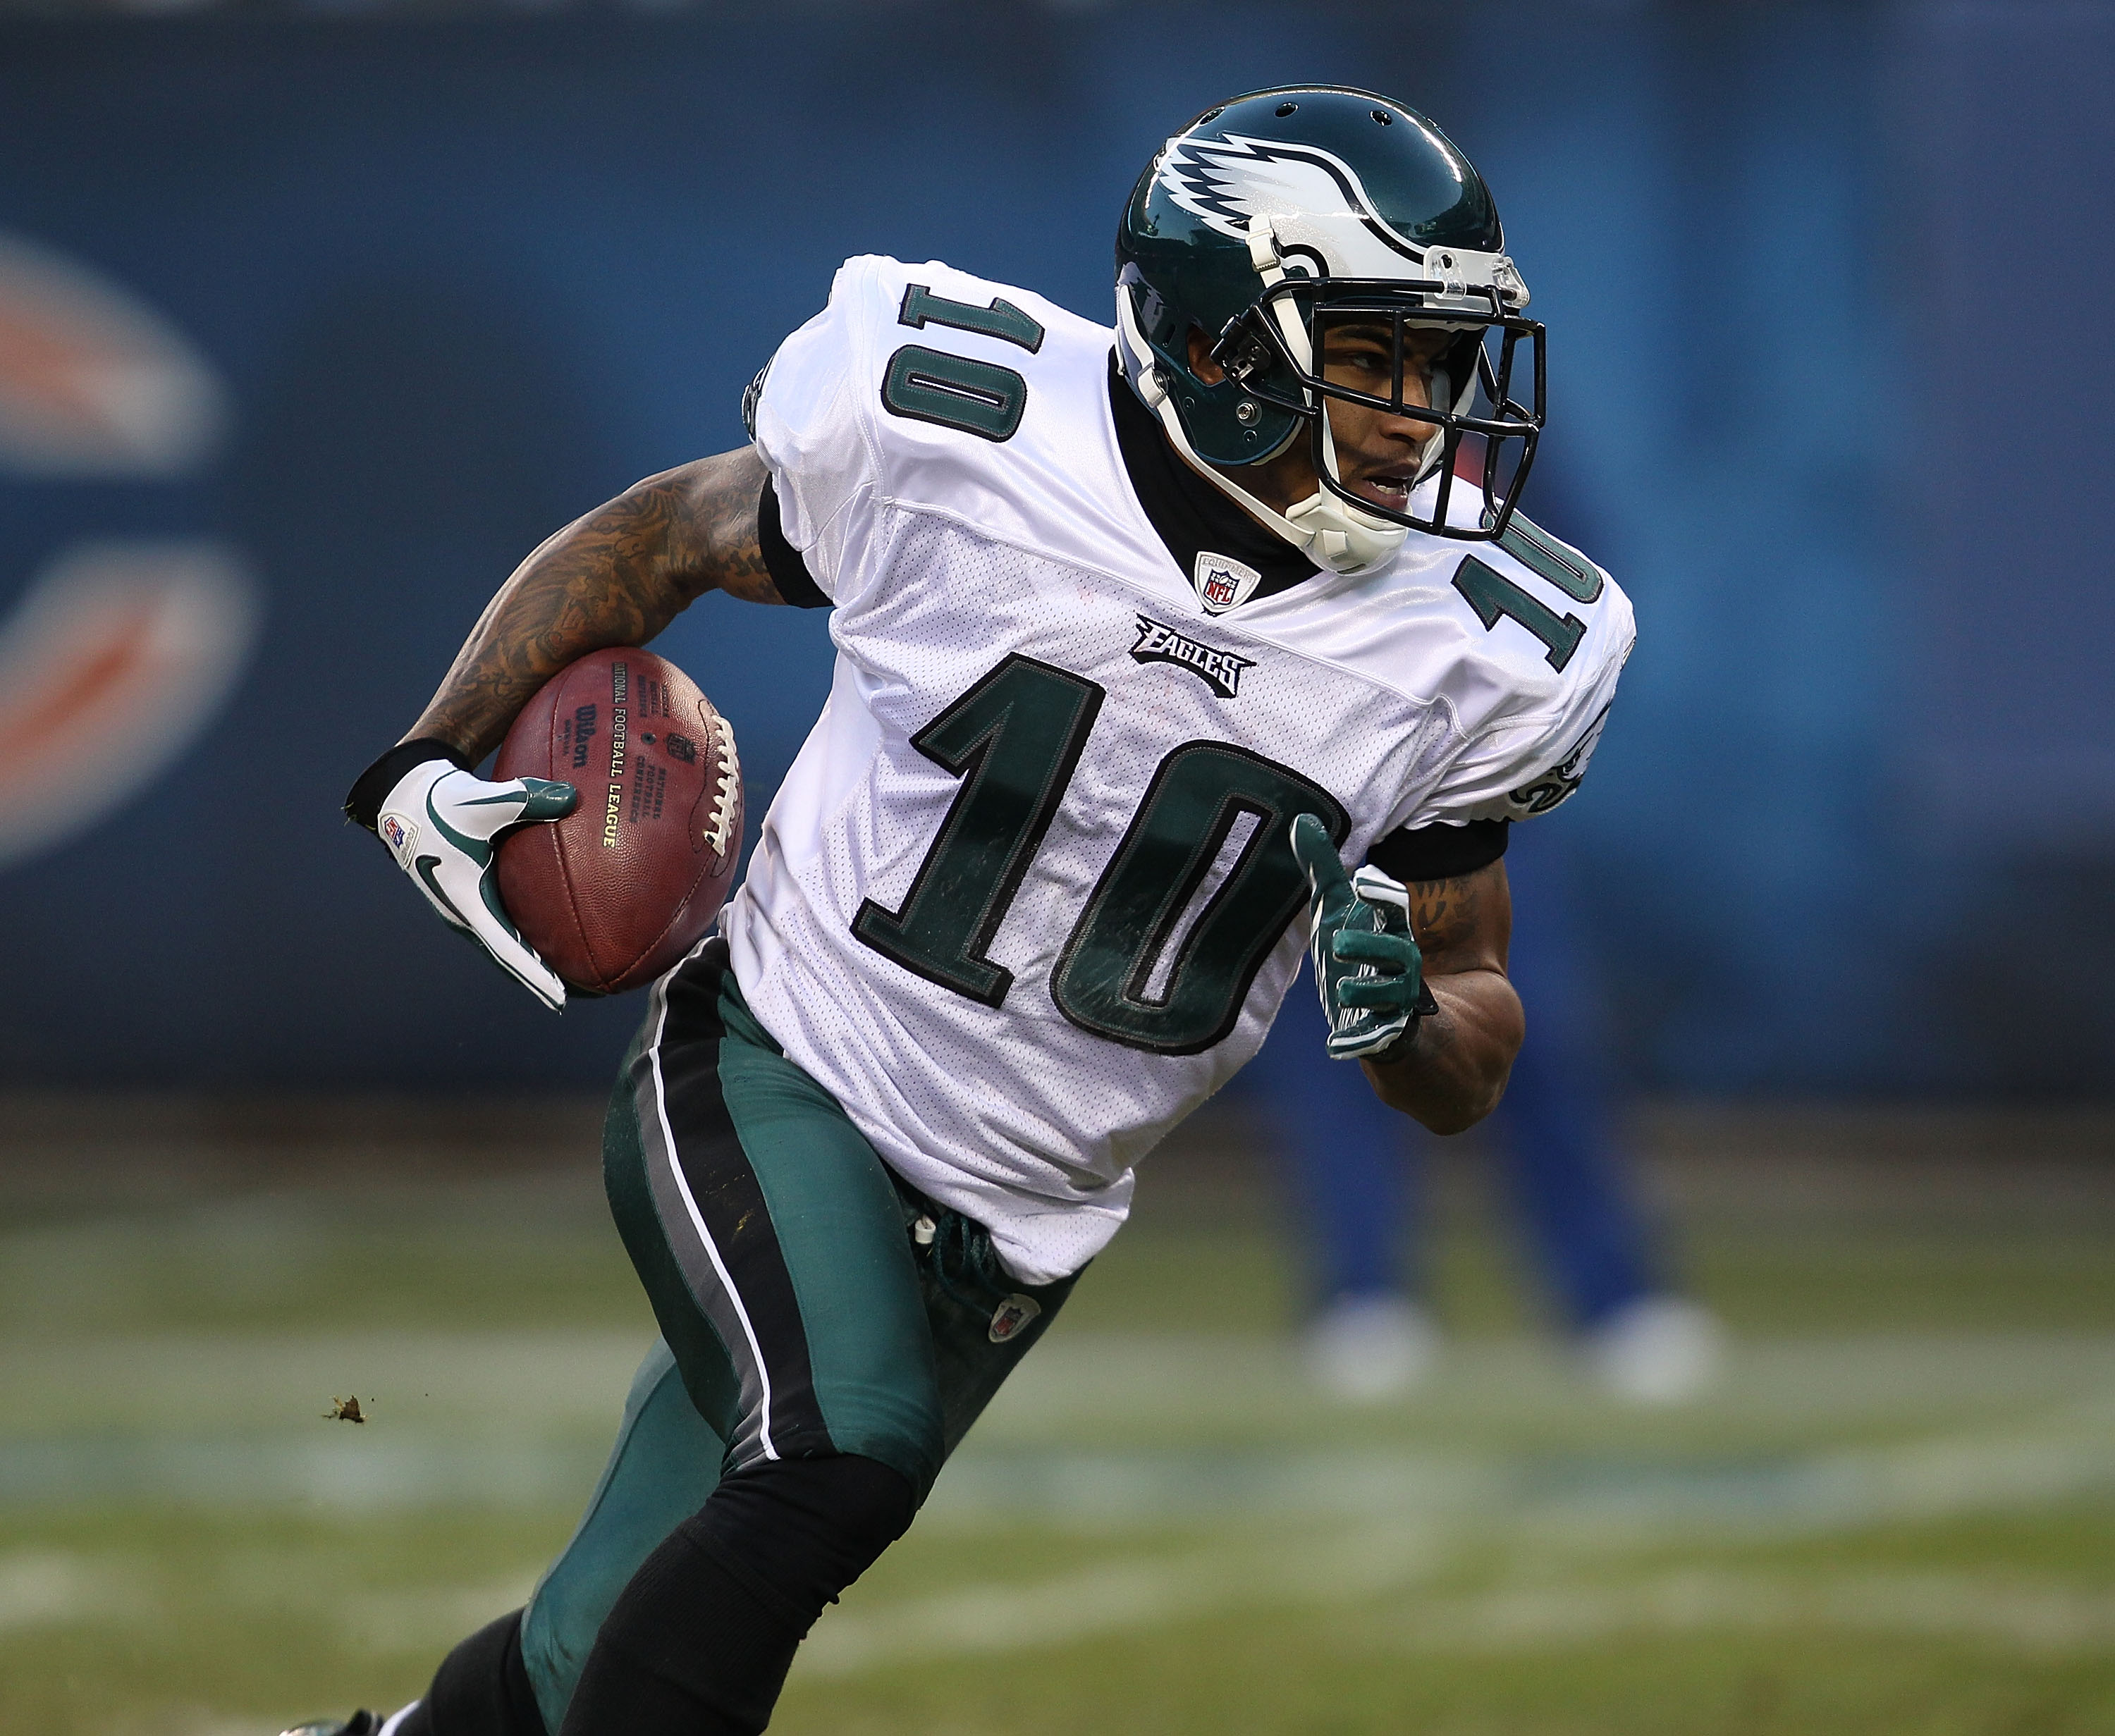 CHICAGO - NOVEMBER 28: DeSean Jackson #10 of the Philadelphia Eagles returns a kick against the Chicago Bears at Soldier Field on November 28, 2010 in Chicago, Illinois. The Bears defeated the Eagles 31-26. (Photo by Jonathan Daniel/Getty Images)